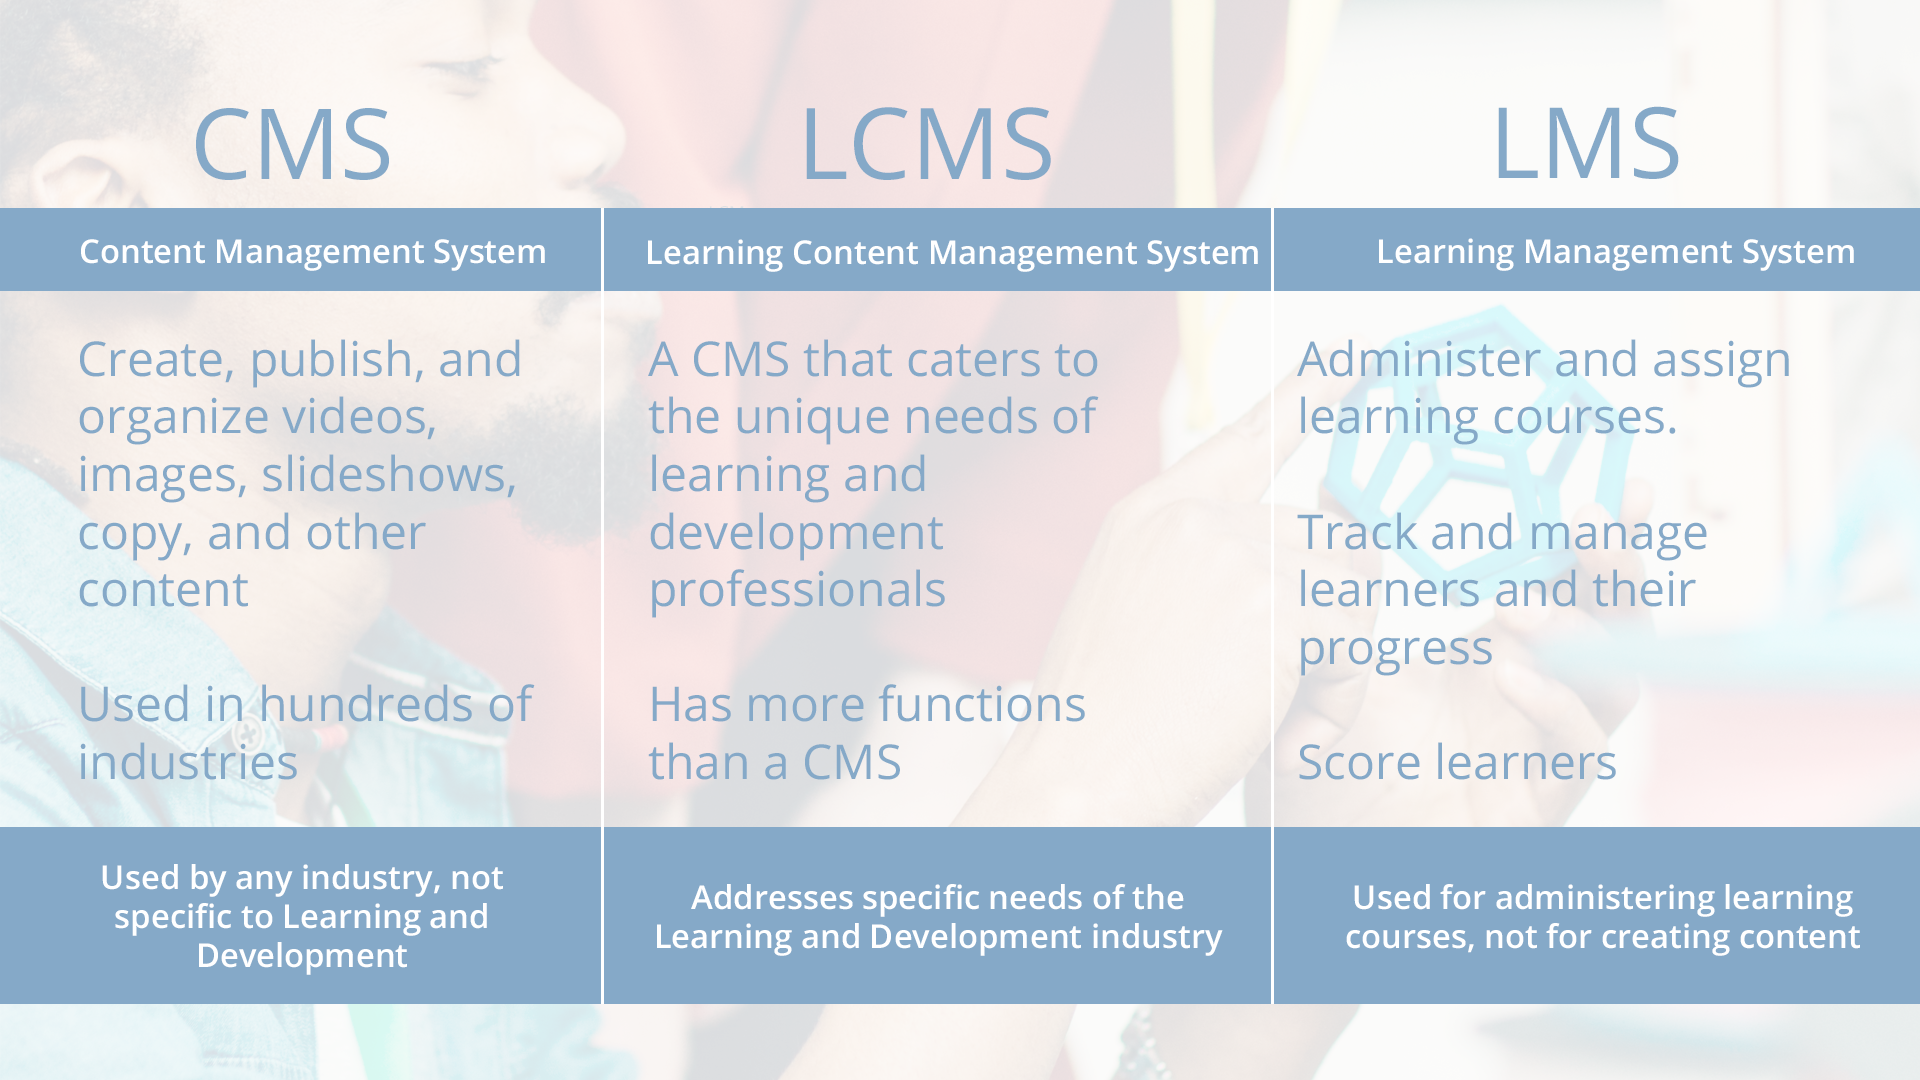 LMS vs. LCMS vs. CMS: What's the difference and why does it matter?